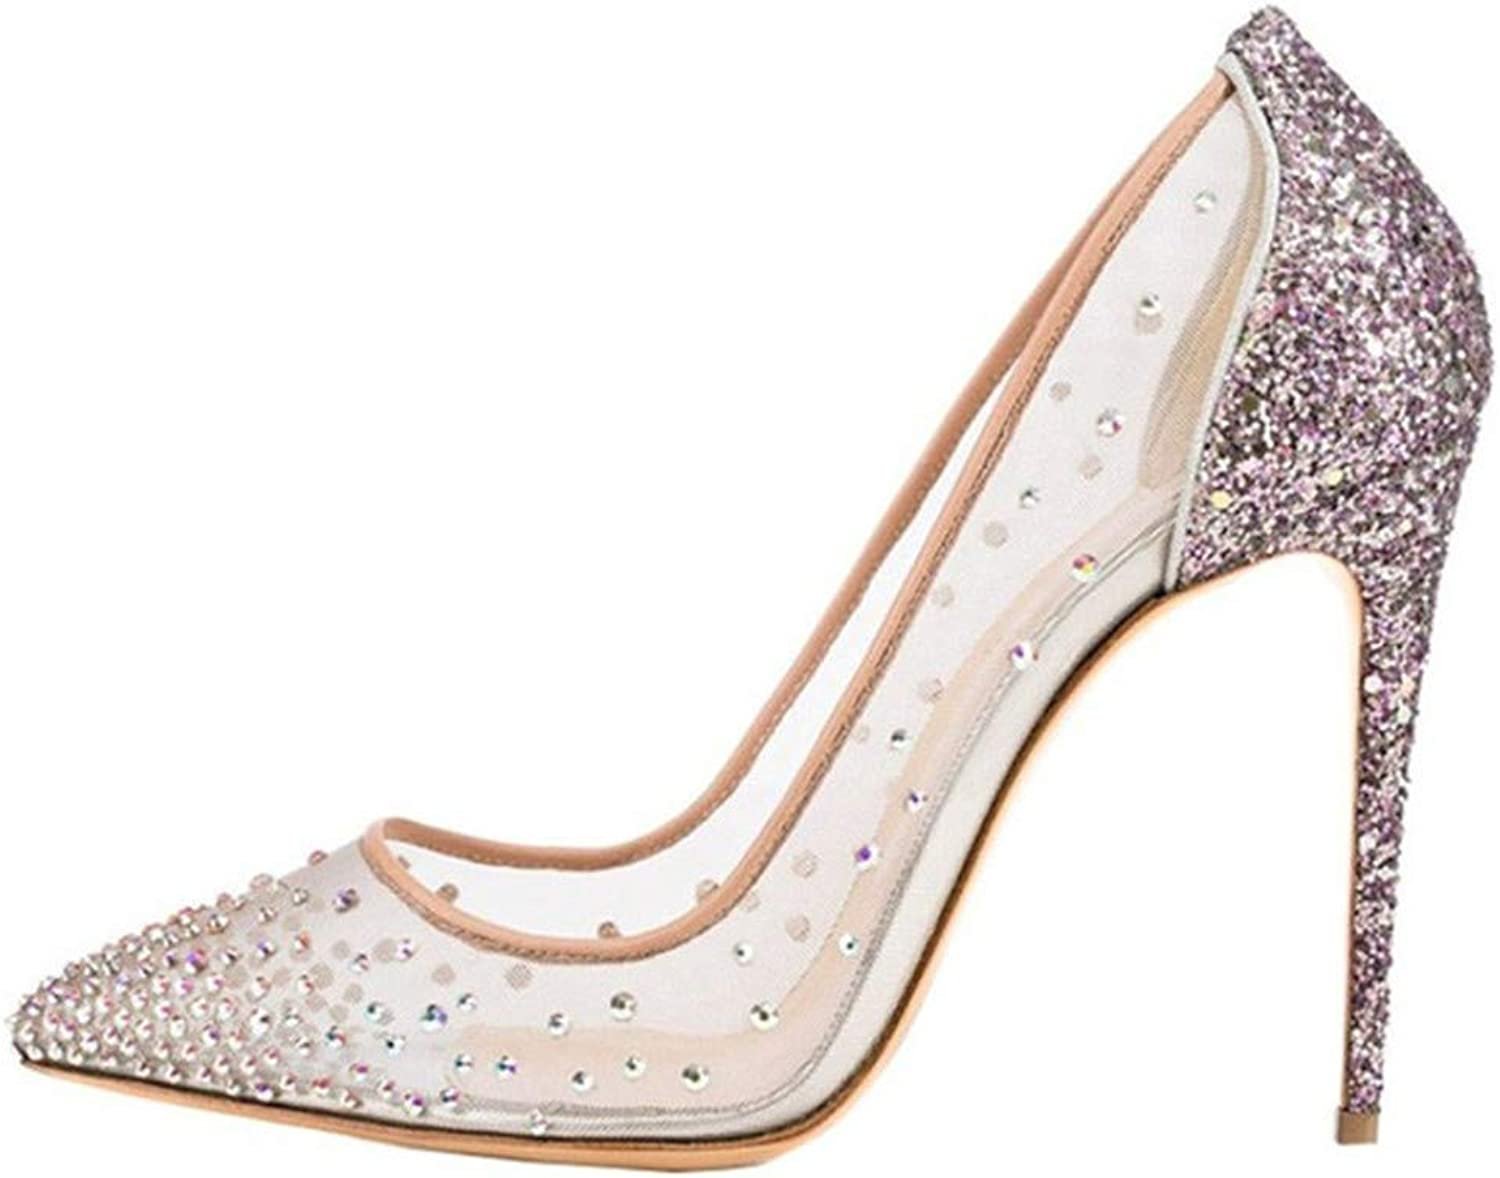 Party shoes for Women Sexy High Heels Rhinestone Summer shoes Woman Pumps Stiletto Wedding shoes